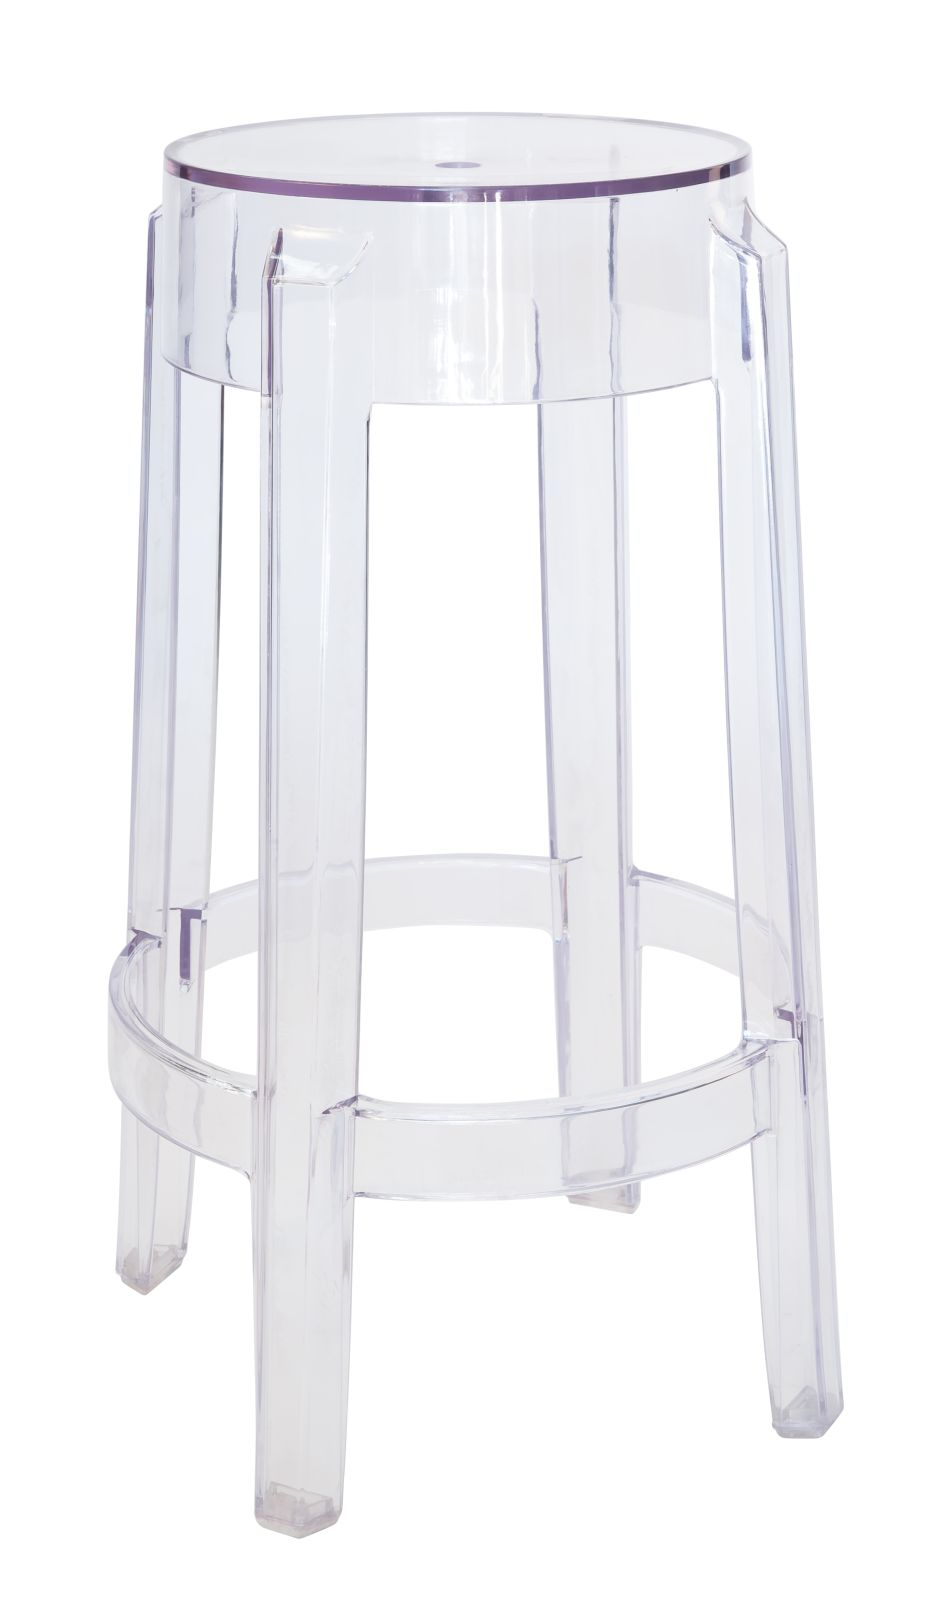 Replica Philippe Starck Louis Ghost Stool 66cm | Clear